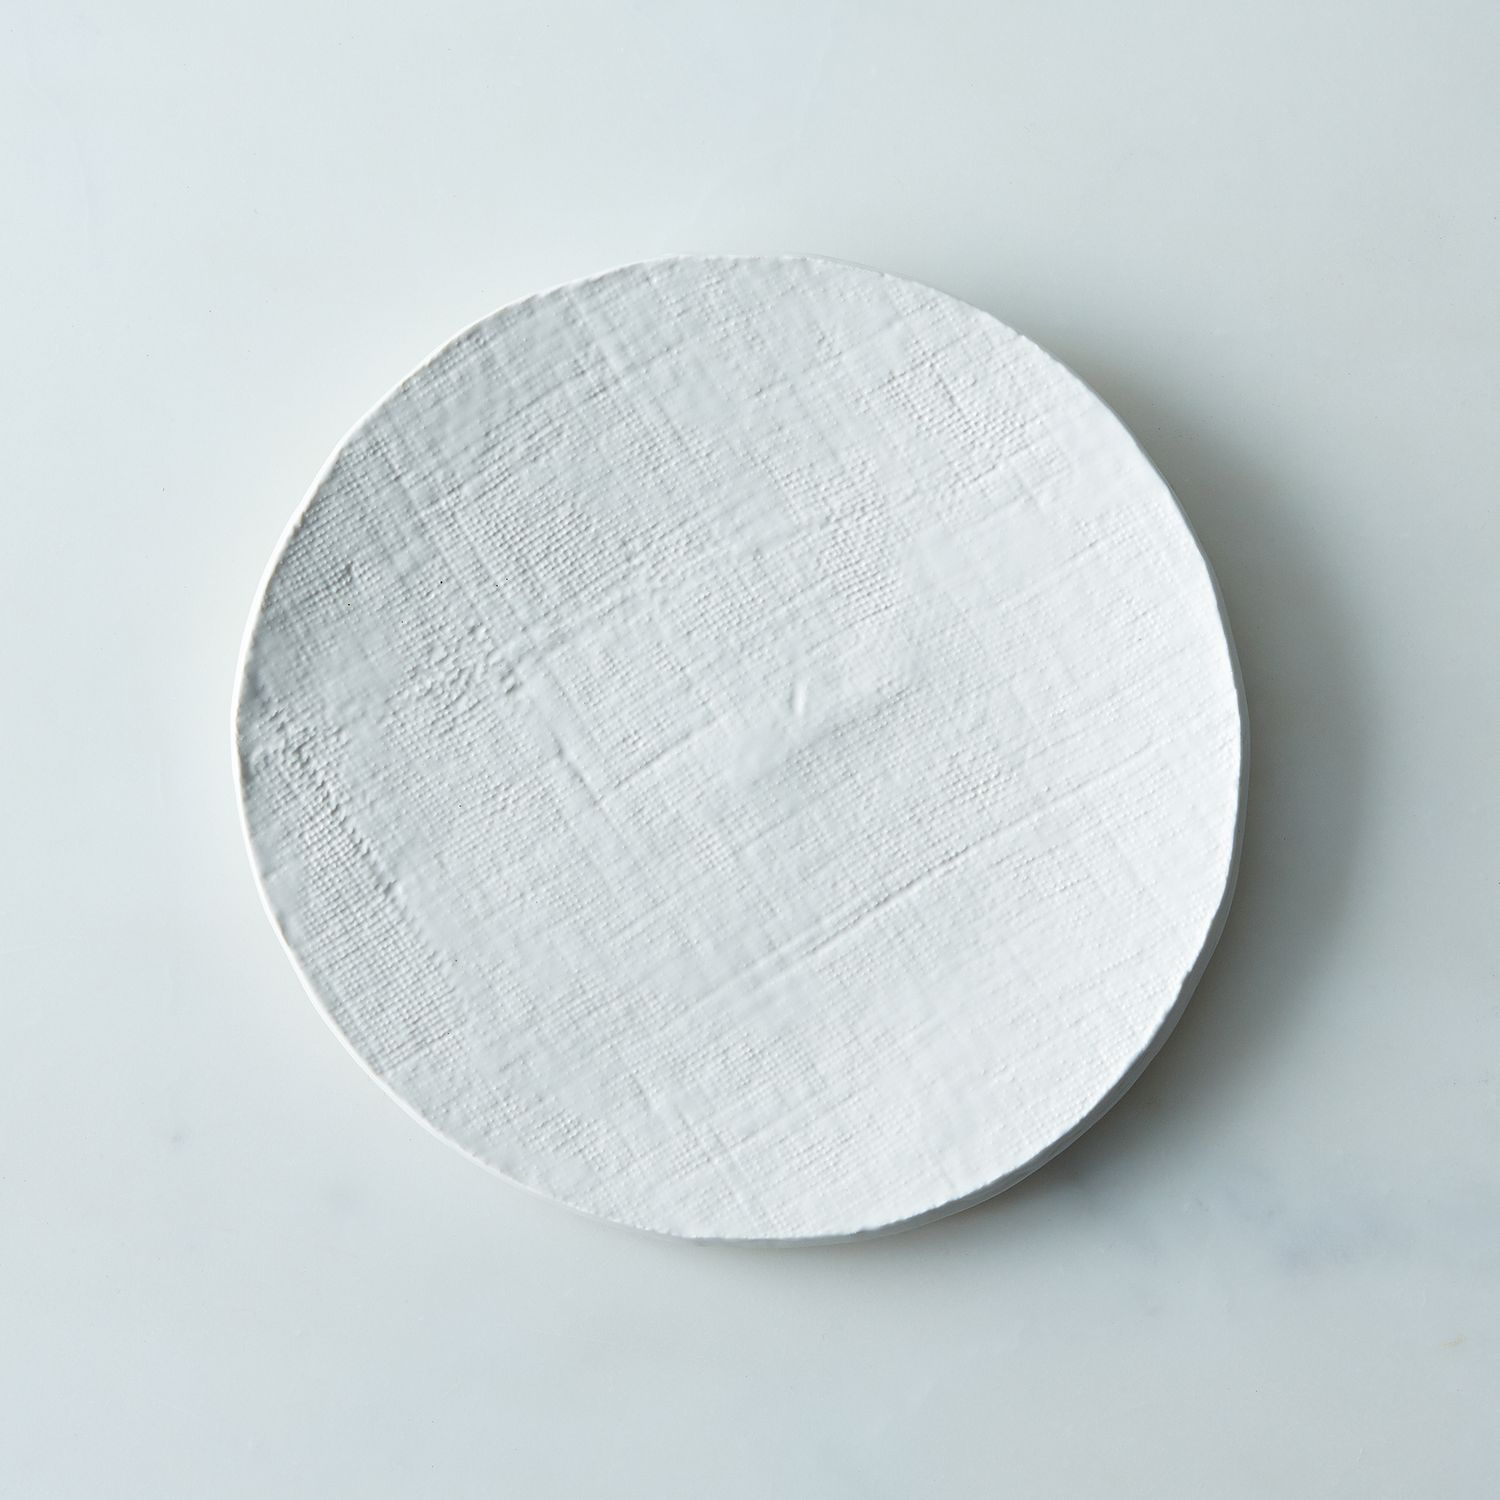 Handmade Porcelain Salad Plate On Food52